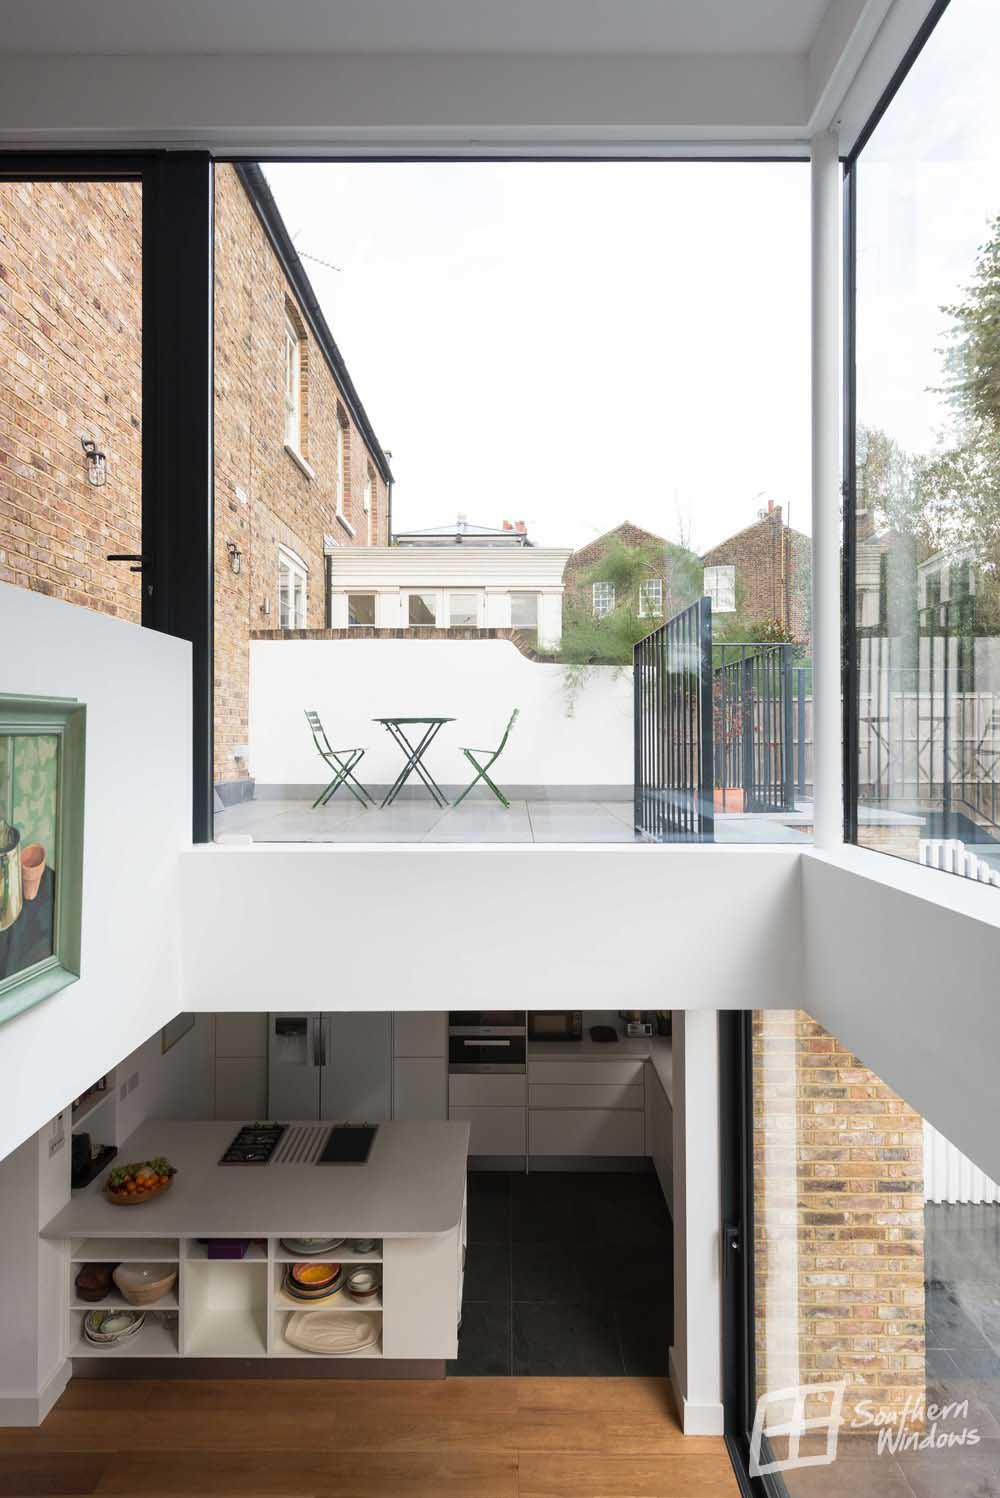 Battersea - large frameless glazing by Southern Windows